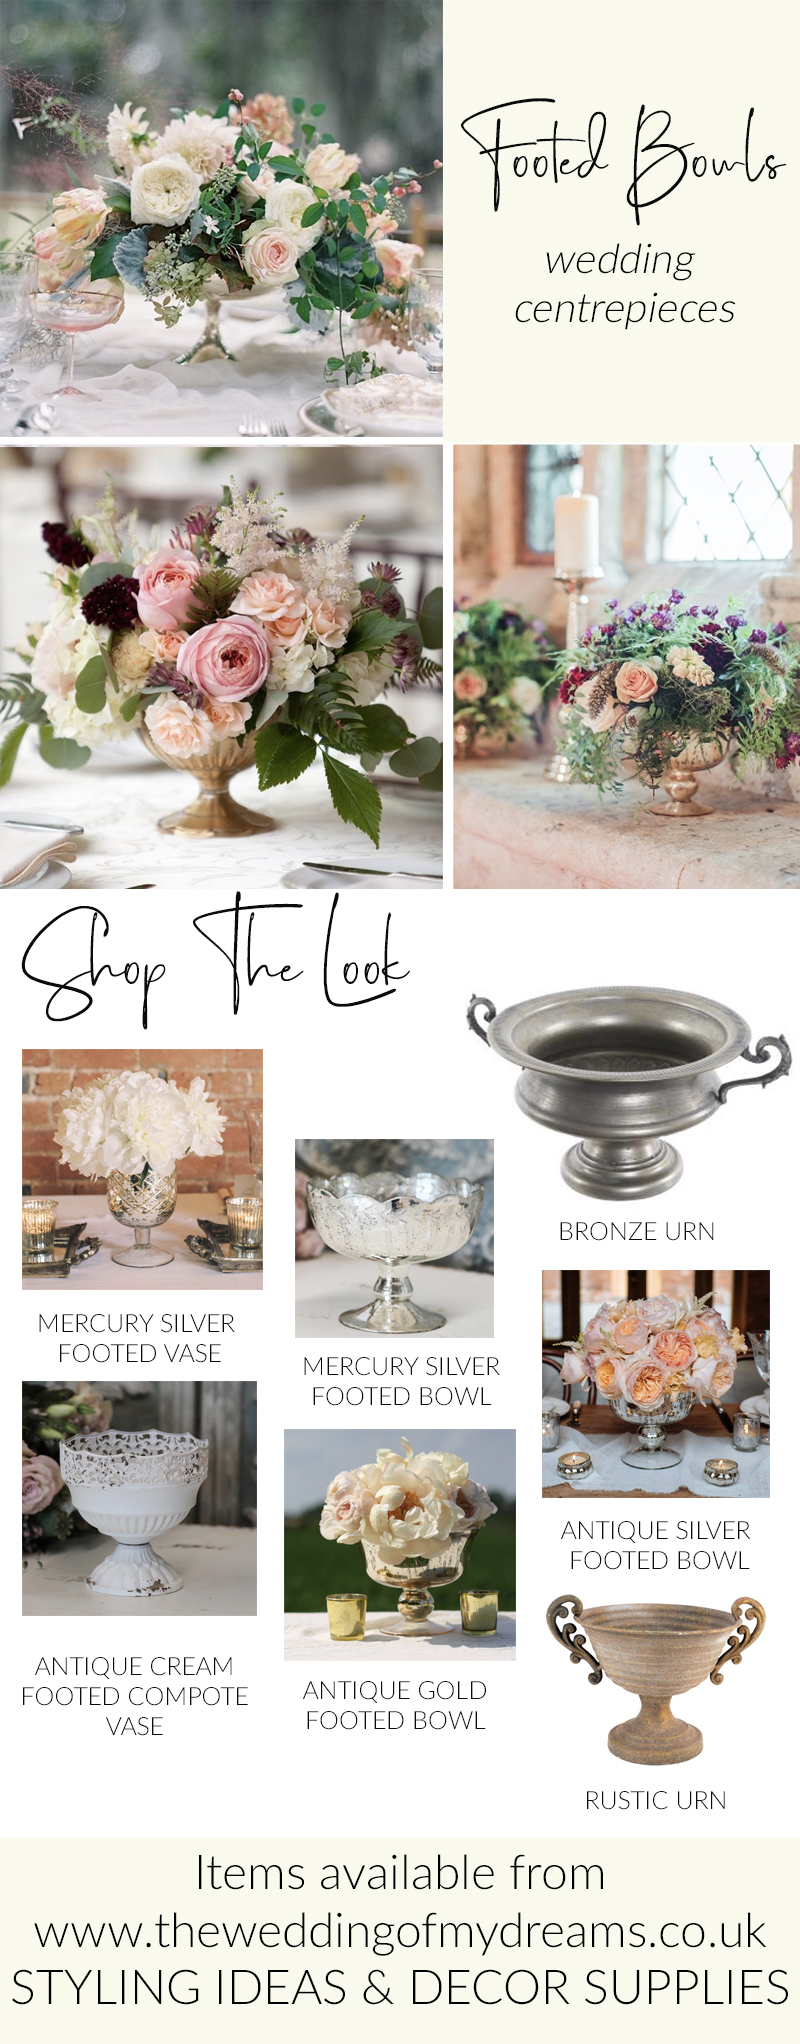 Low wedding centrepieces footed bowls The Wedding of my Dreams WEDDING STYLING IDEAS AND DECOR SUPPLIES UK